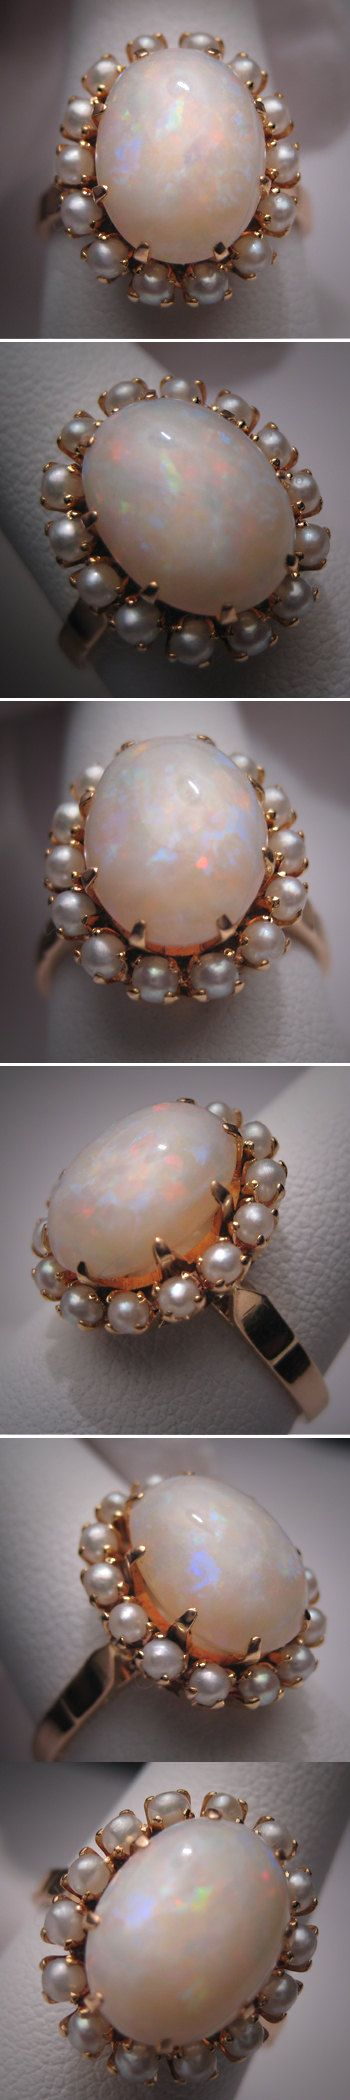 this needs to be on my finger.     Antique Opal Seed Pearl Ring Vintage by AawsombleiJewelry on Etsy, $1250.00